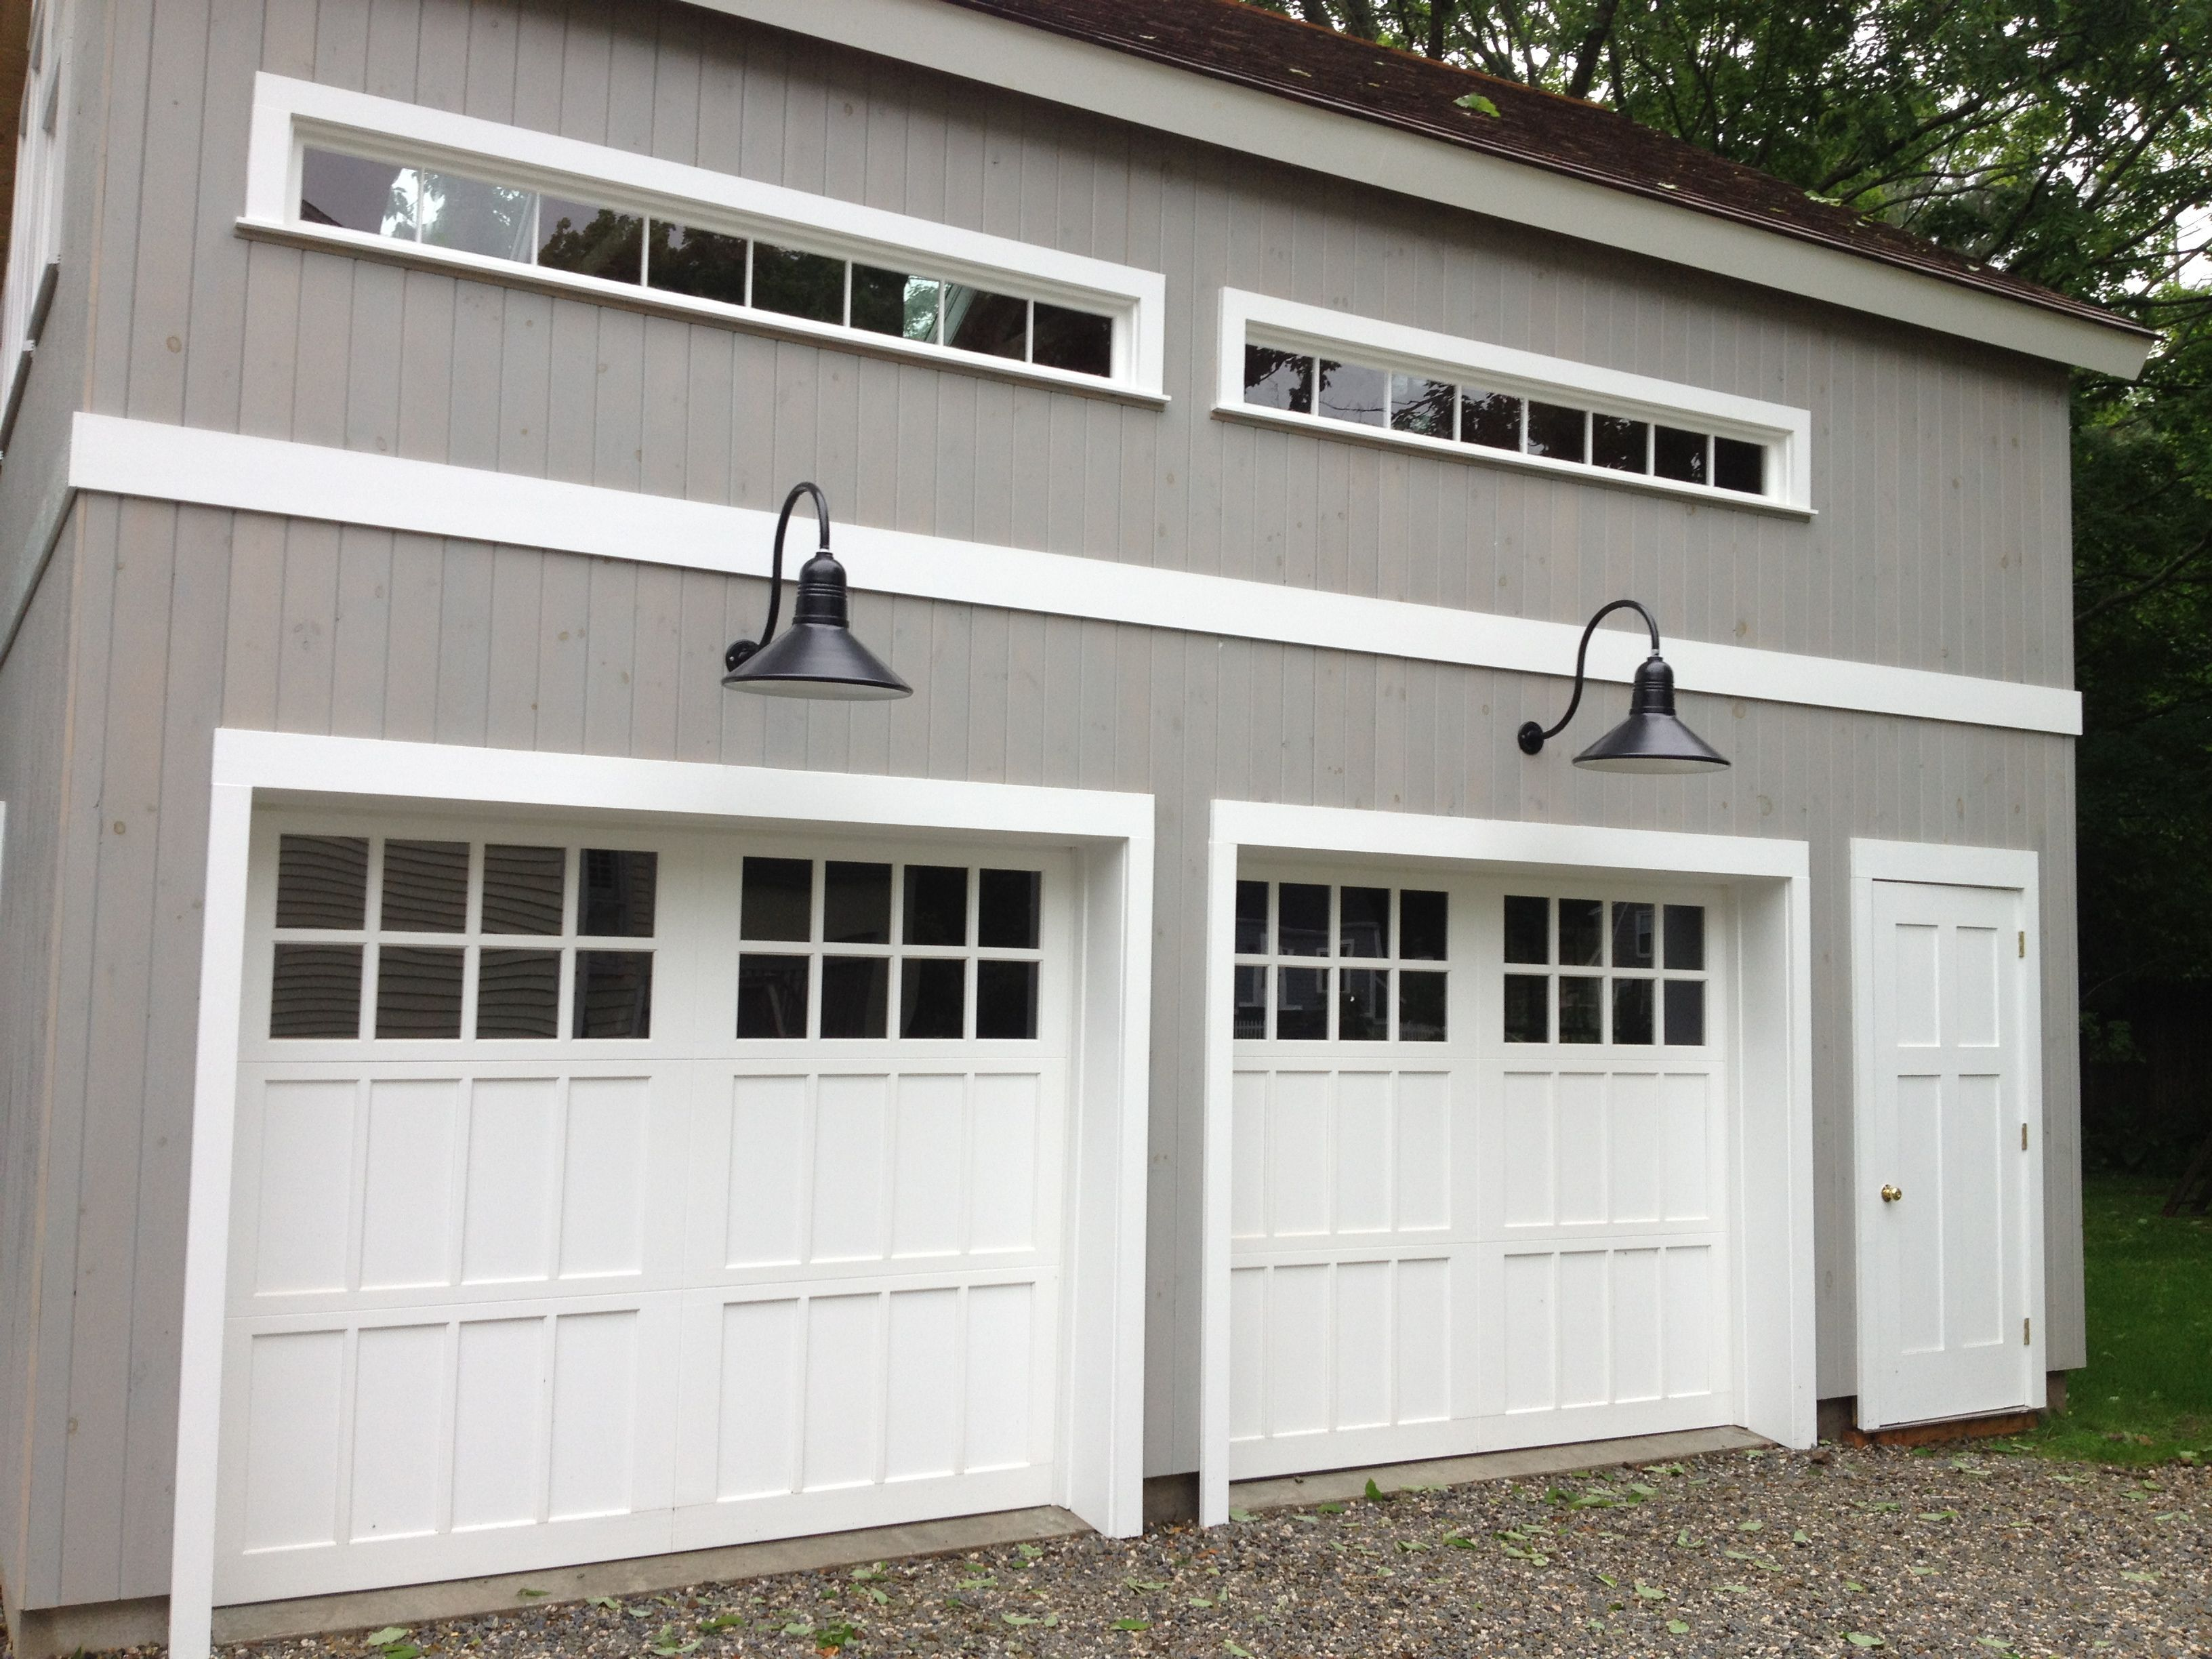 Garage Door Repair Jackson Mi Clopay Garage Door Window Inserts Clopay Carriage House Garage